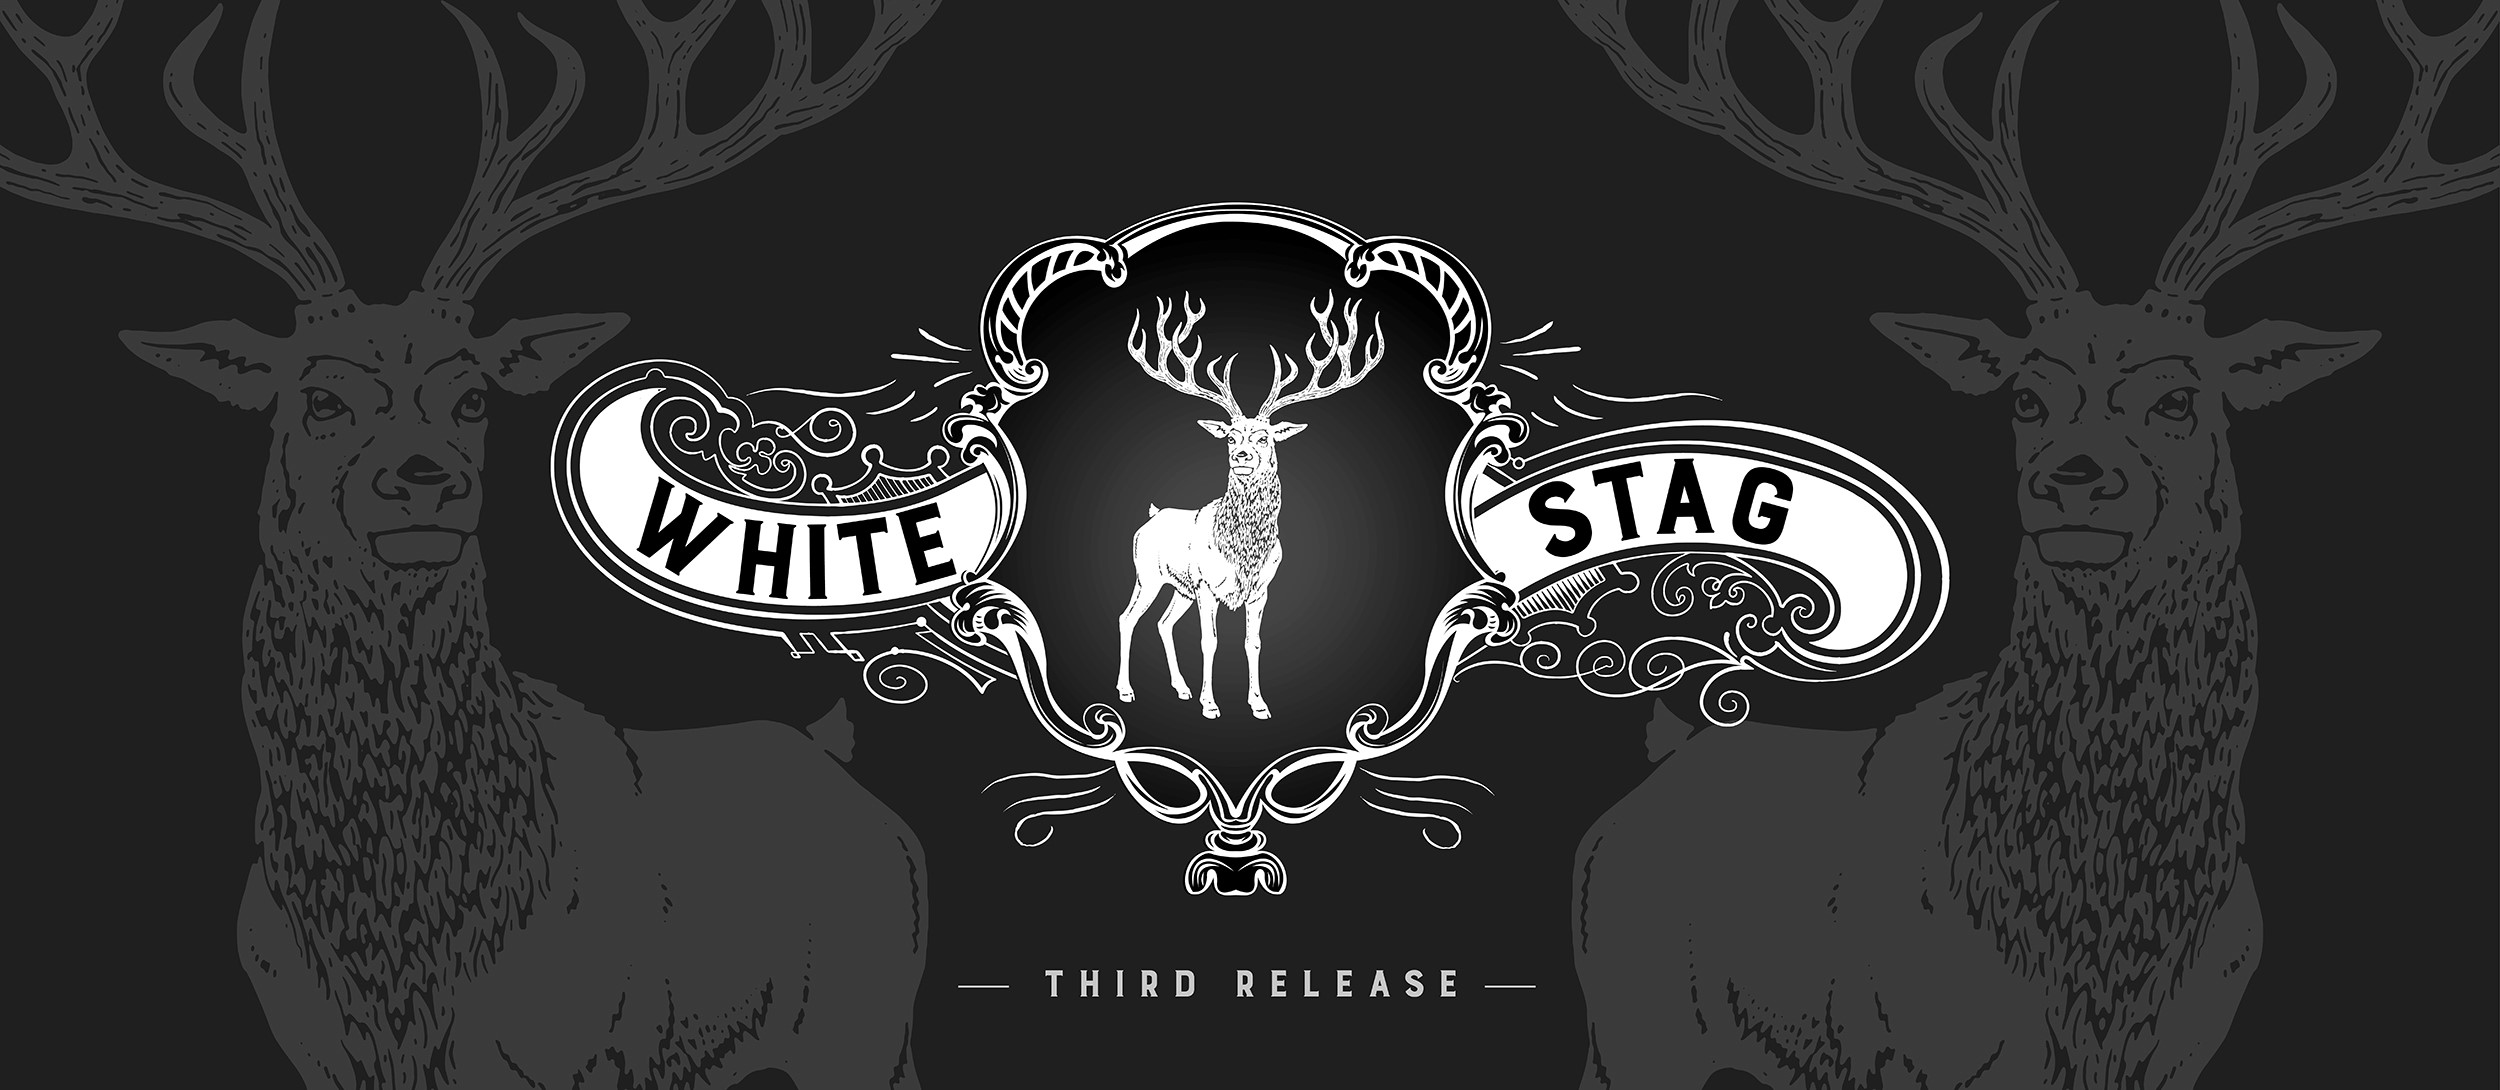 White Stag Third Release